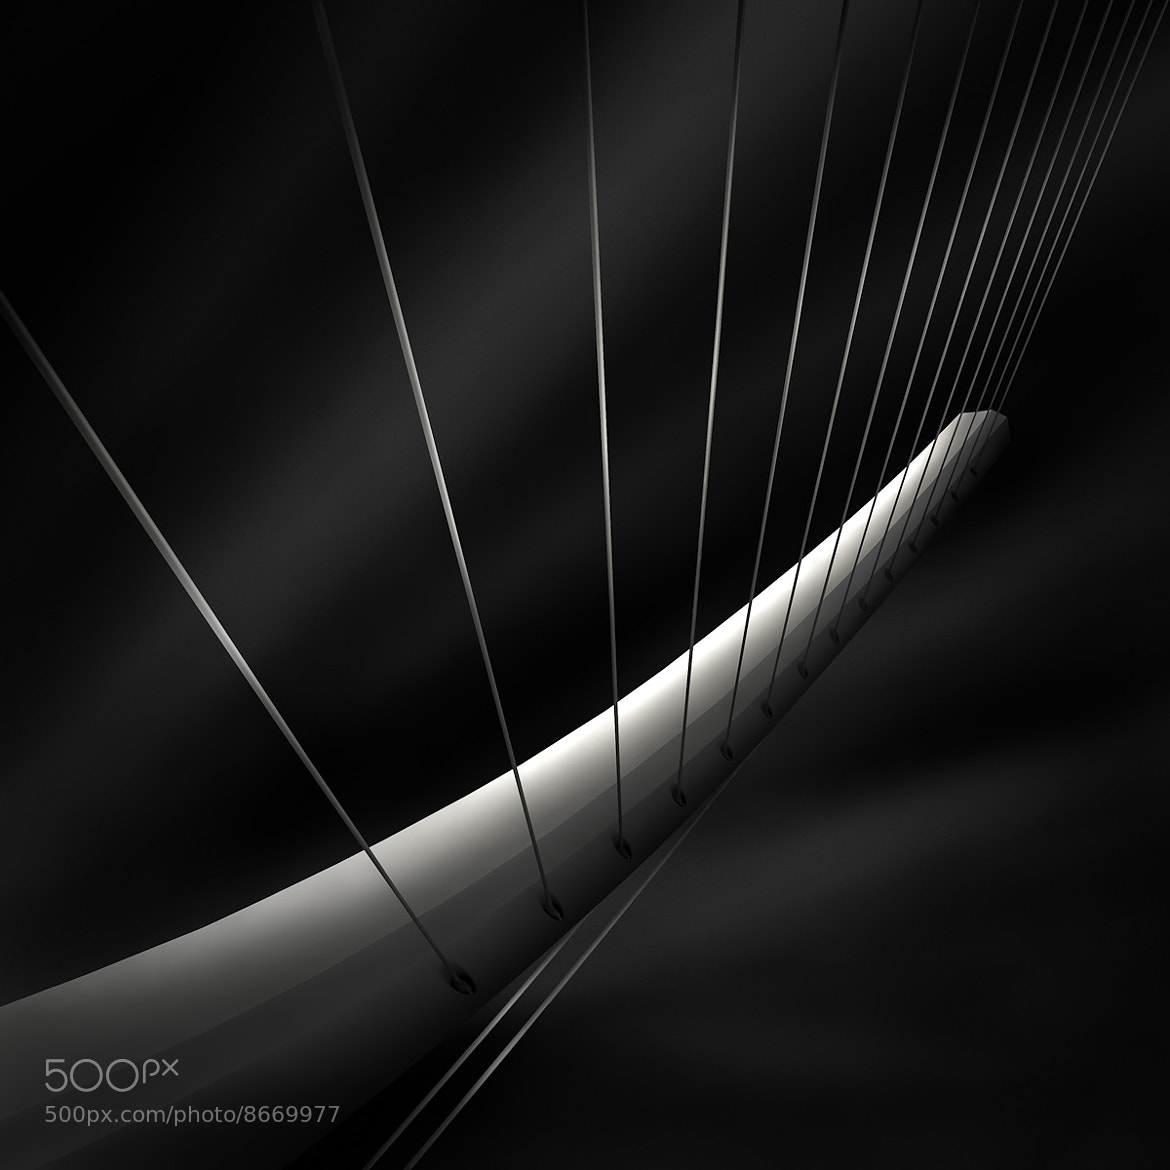 Photograph like a harp's strings IV - radiating by Julia Anna Gospodarou on 500px